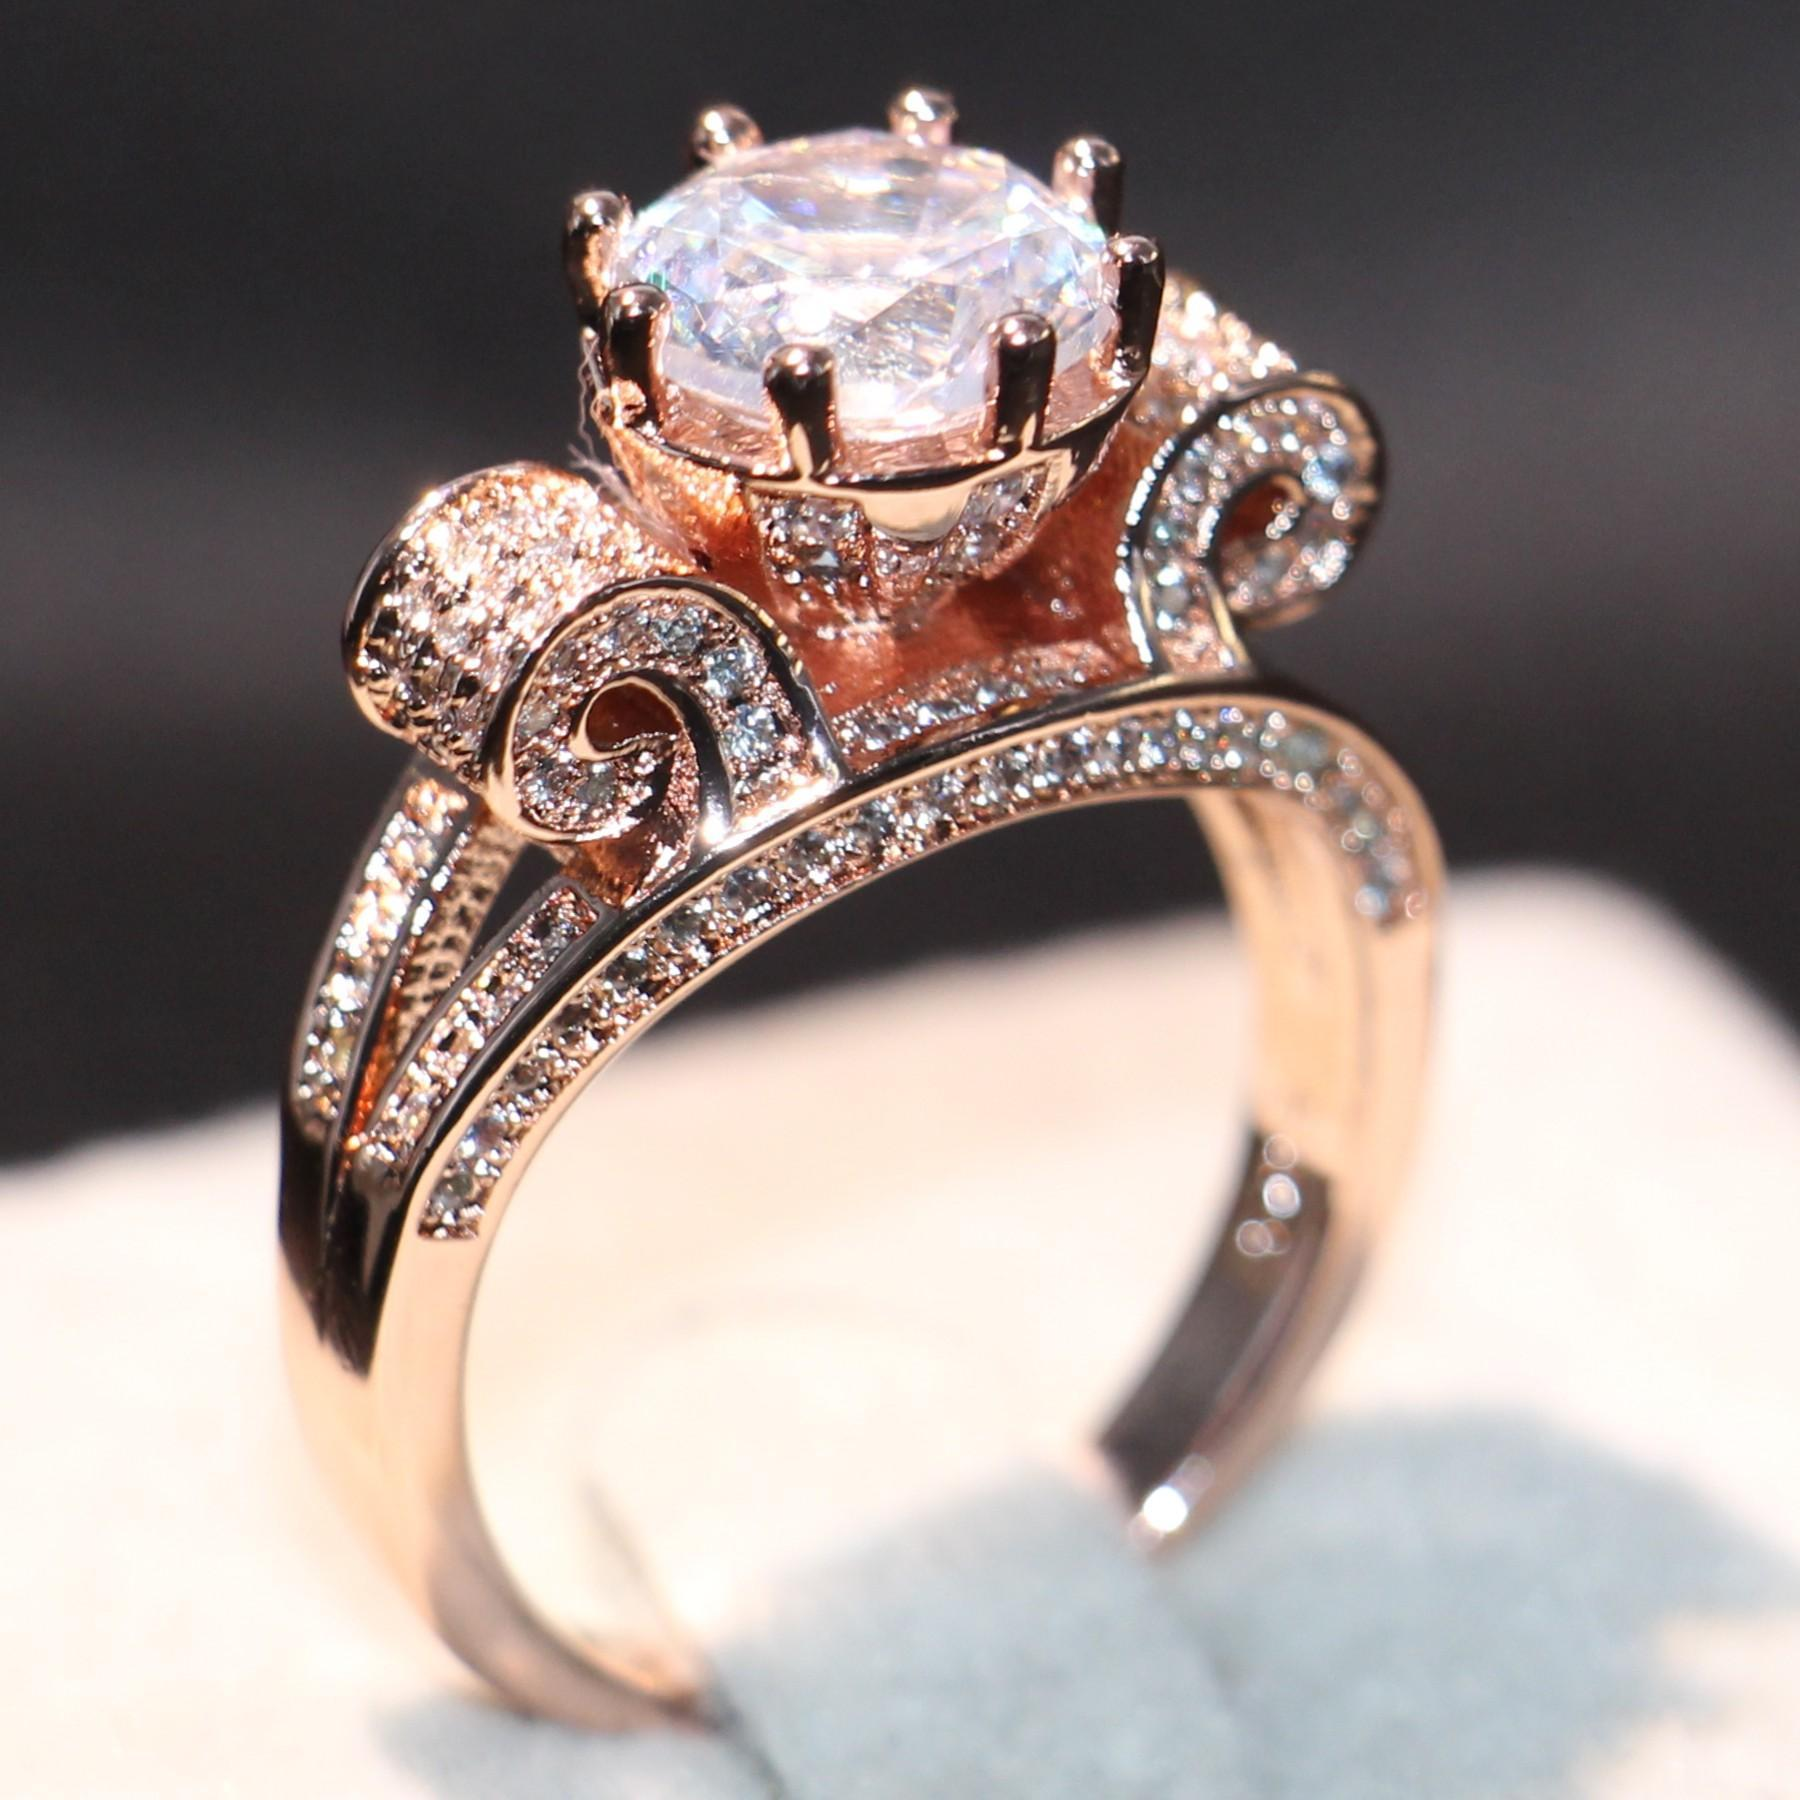 4af358b66b60c 2019 Brand Desgin New Arrival Luxury Jewelry 3CT 925 Sterling Silver Rose  Gold Filled Round Cut White Topaz CZ Diamond Women Wedding Crown Ring From  ...